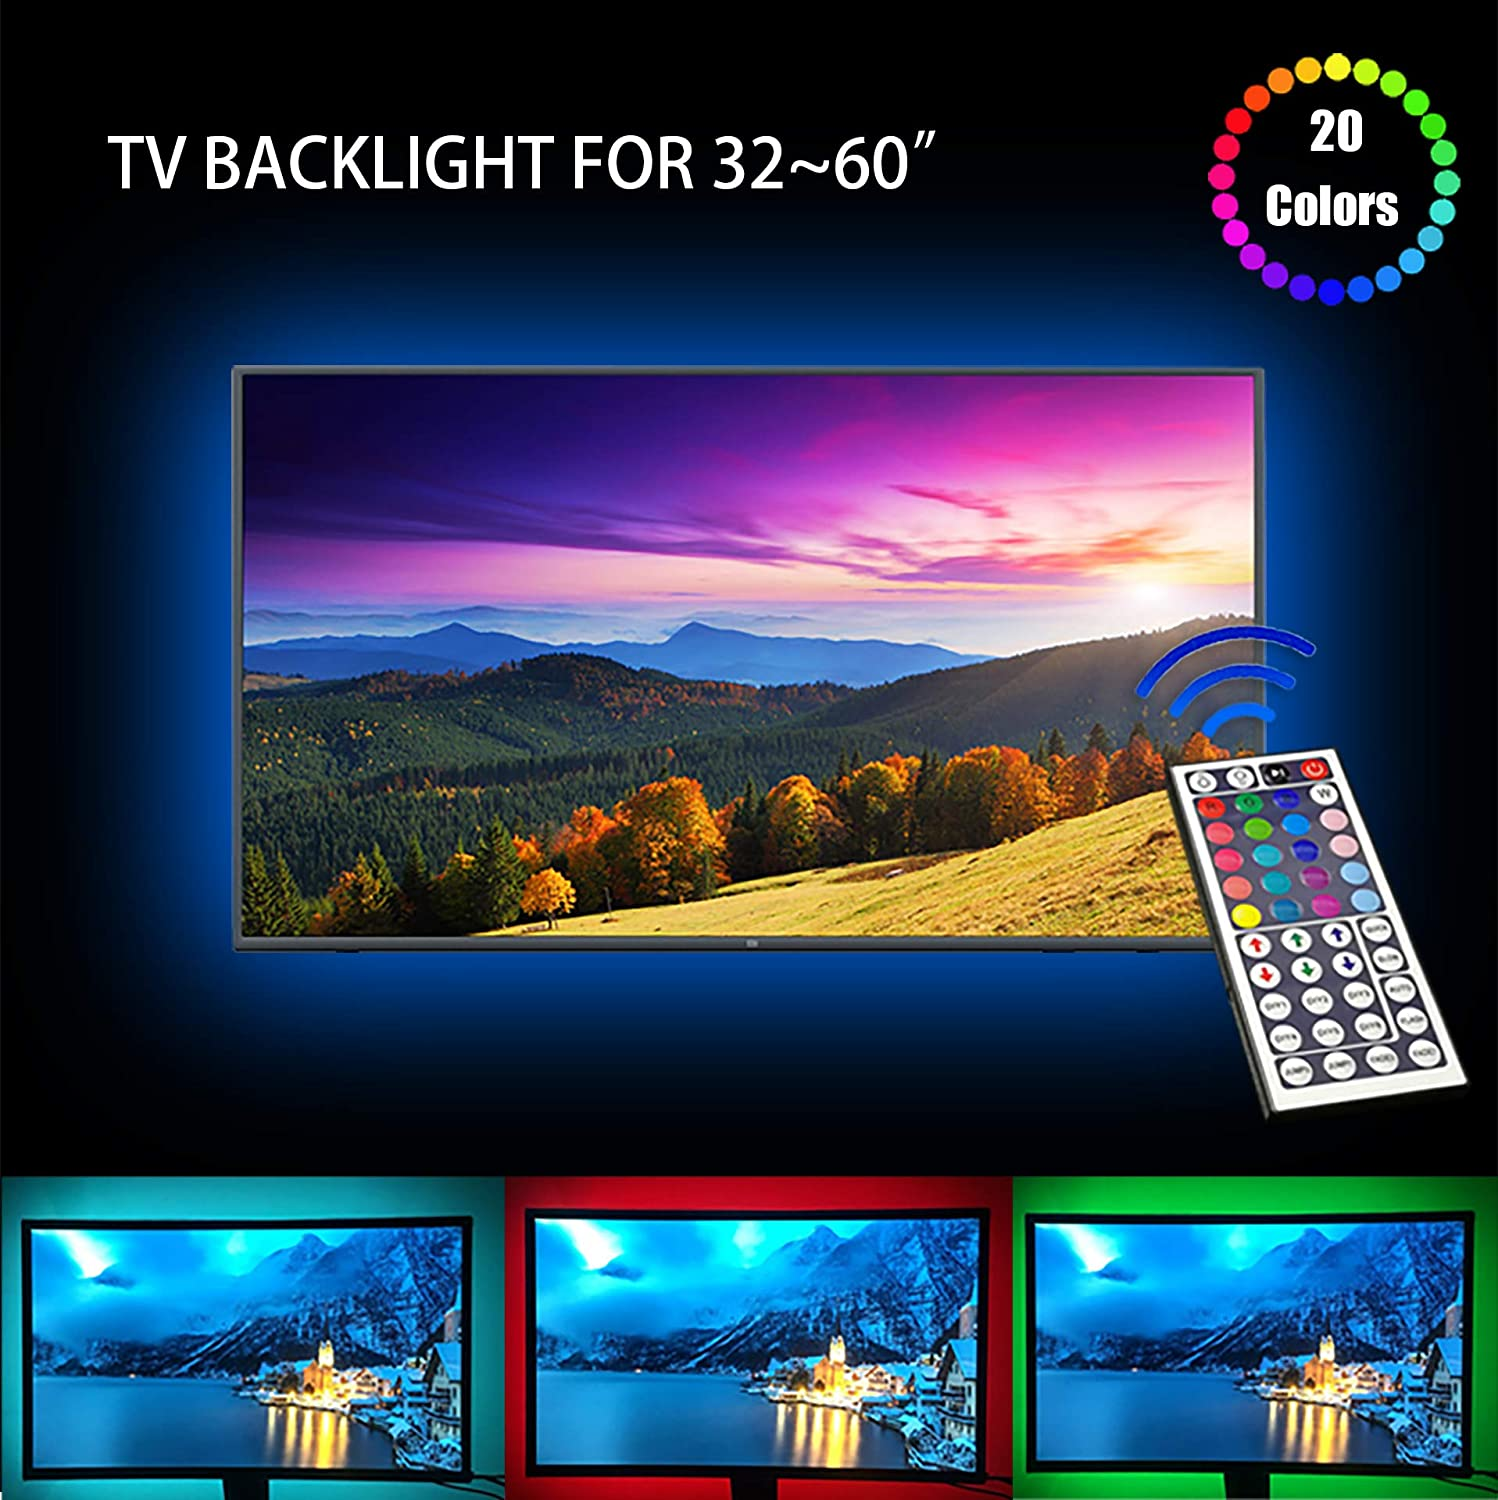 Amazon.com: LED TV Backlight, USB Basic Lighting for 32-60in ...